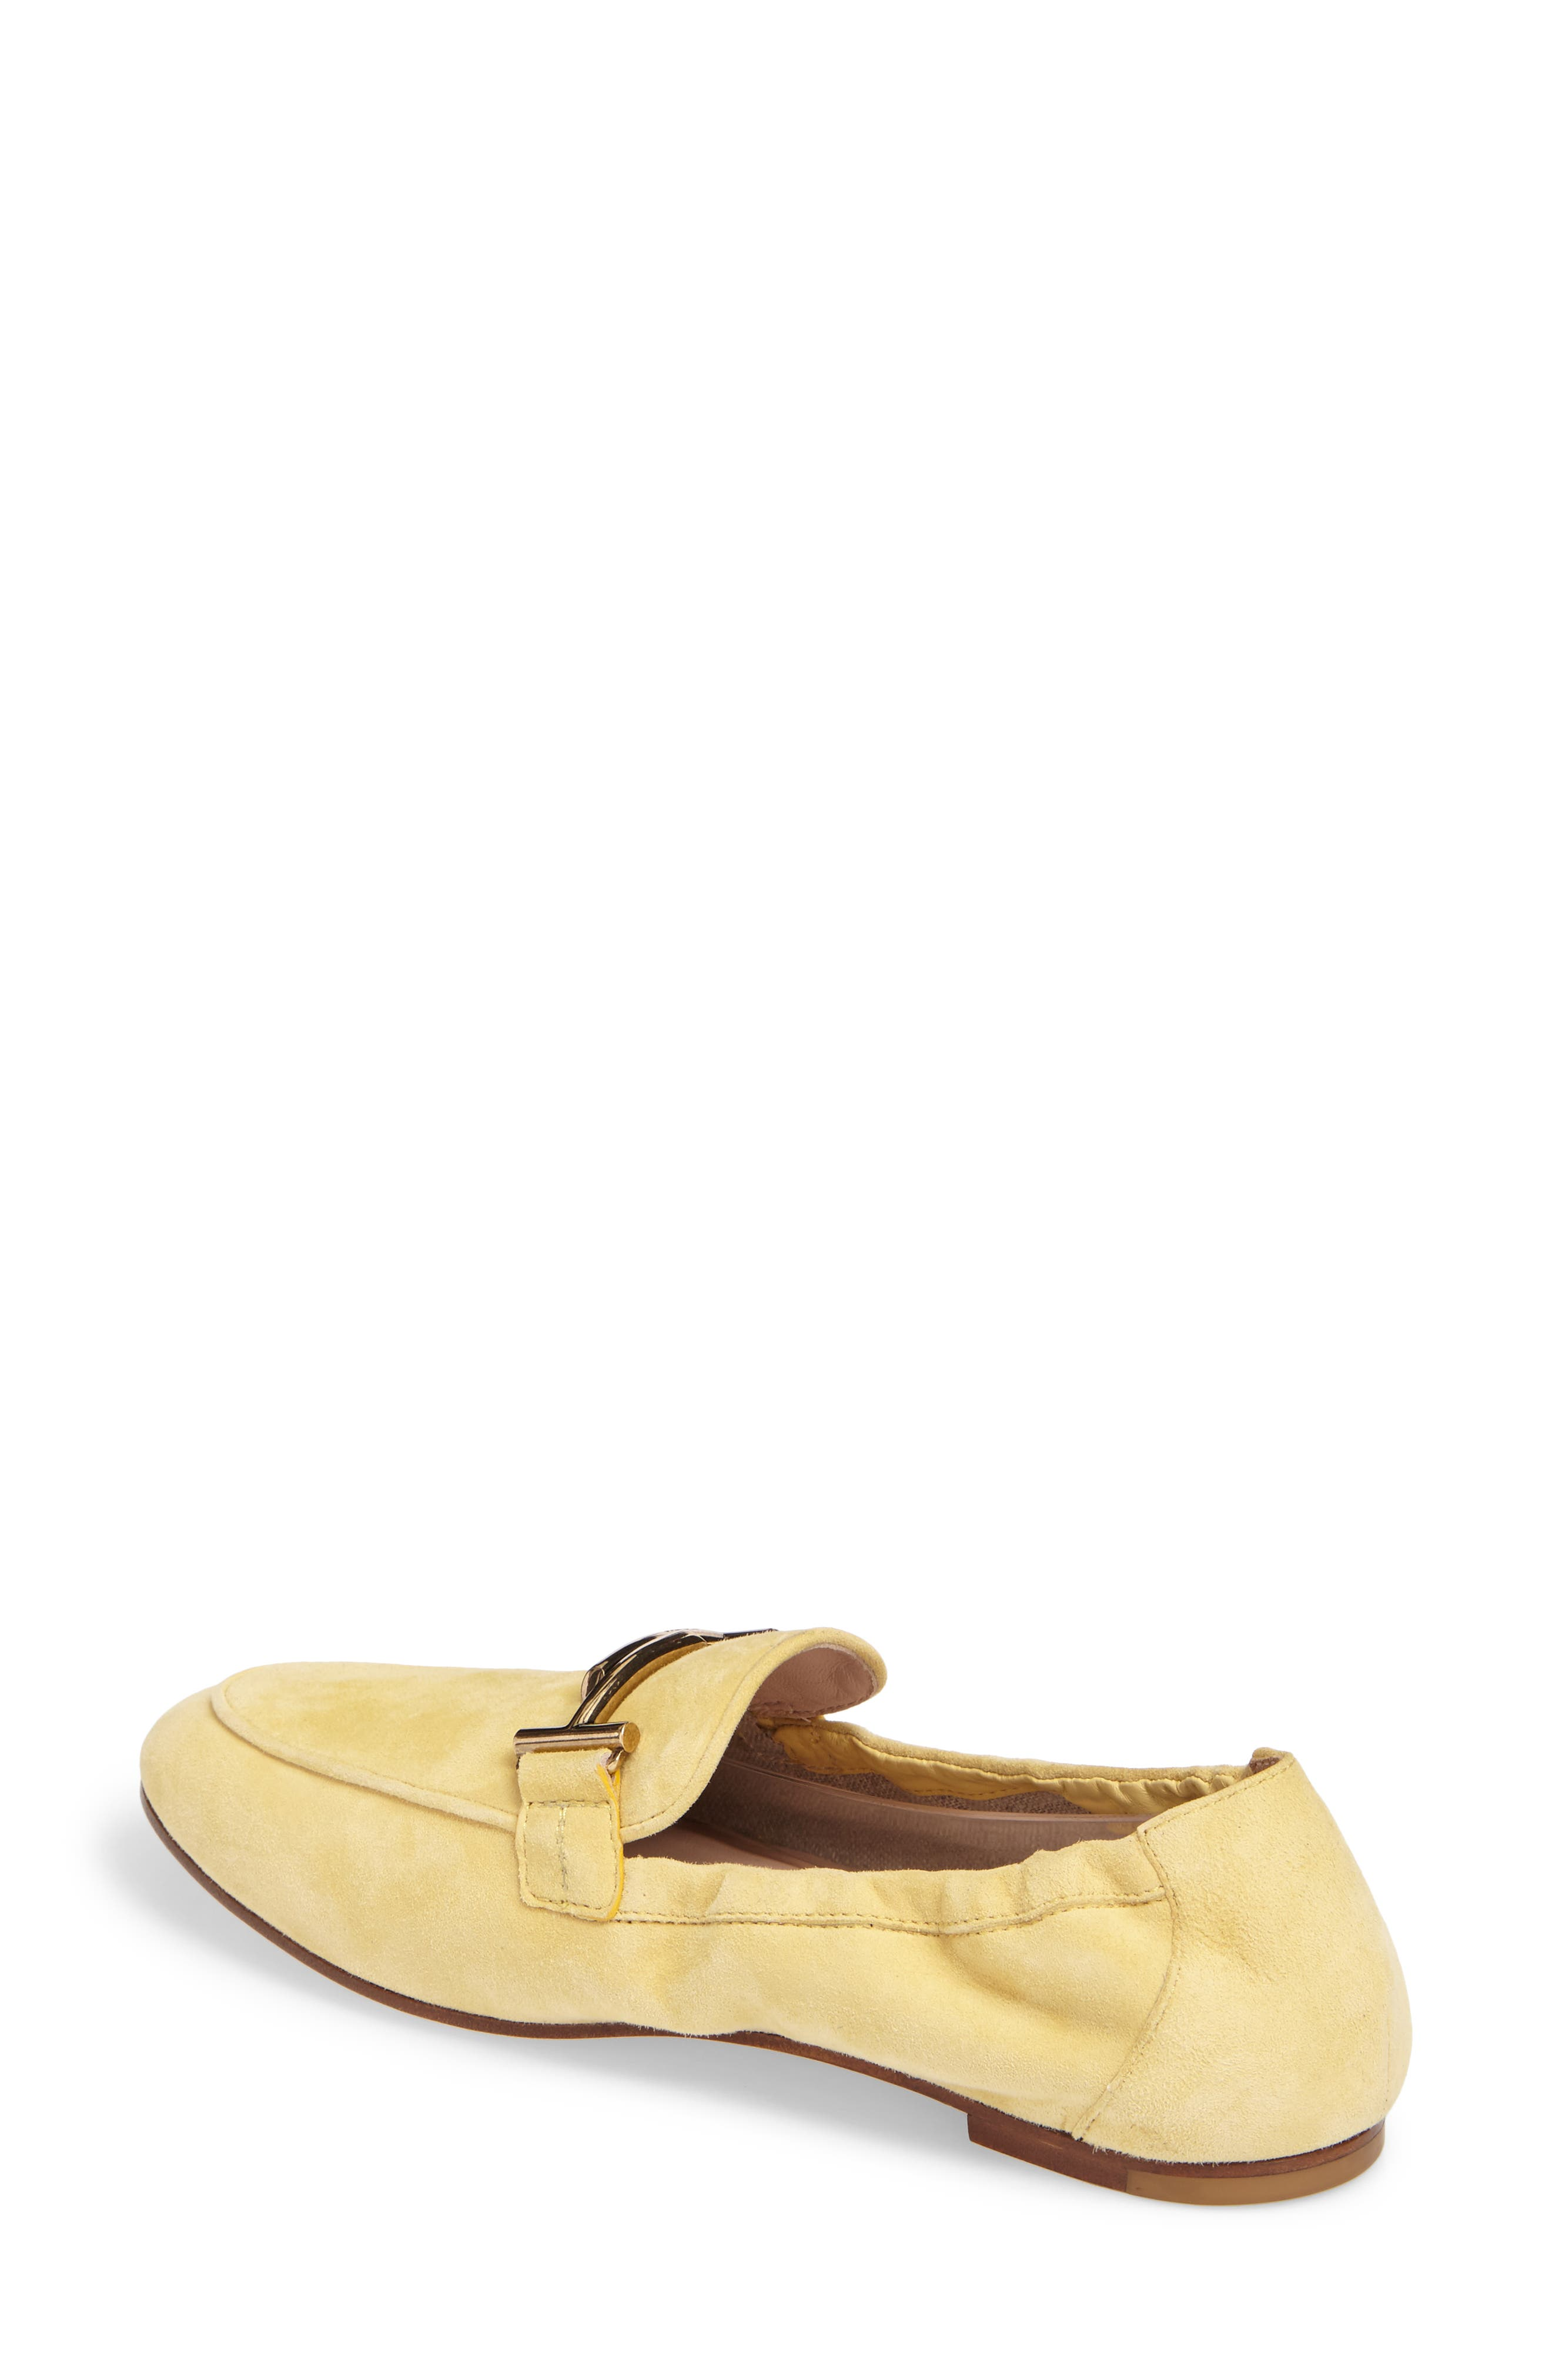 Double T Scrunch Loafer,                             Alternate thumbnail 8, color,